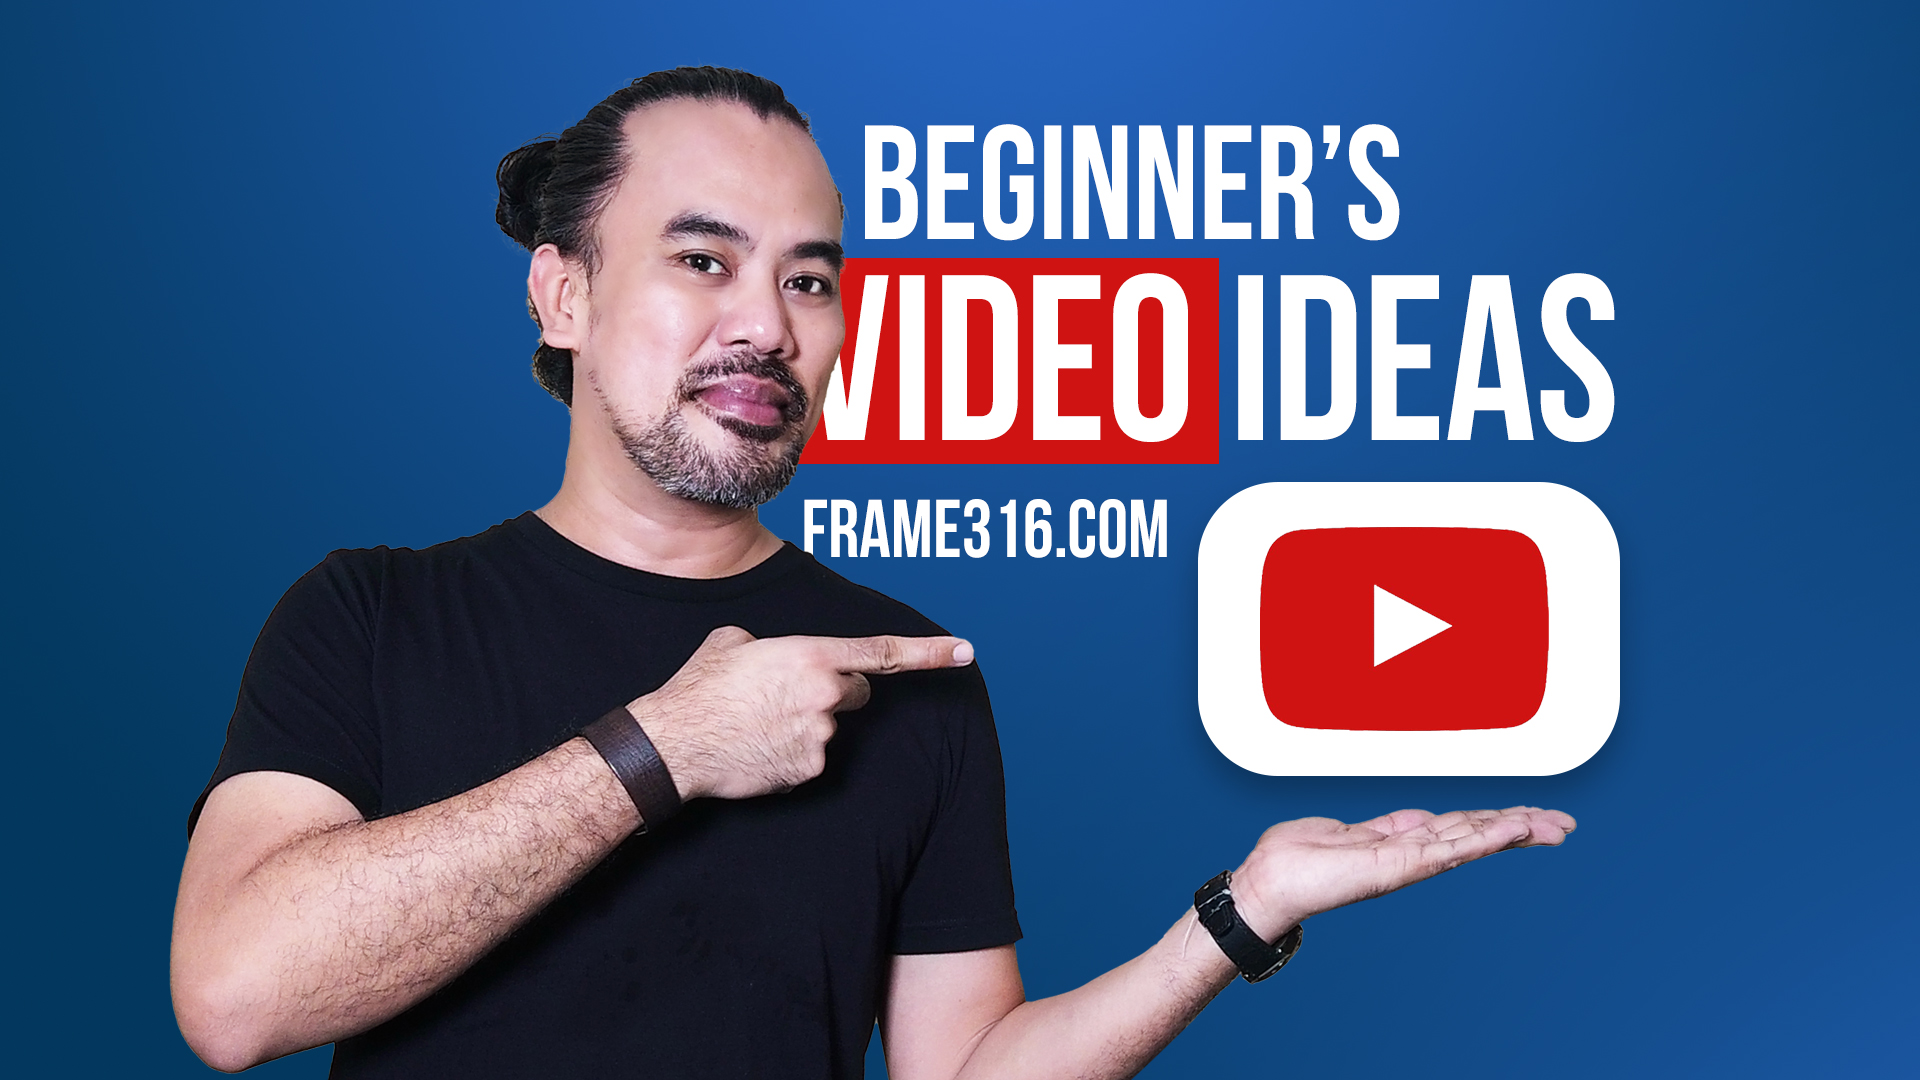 Best Video Ideas For New YouTubers (7 Videos to Start your Channel)